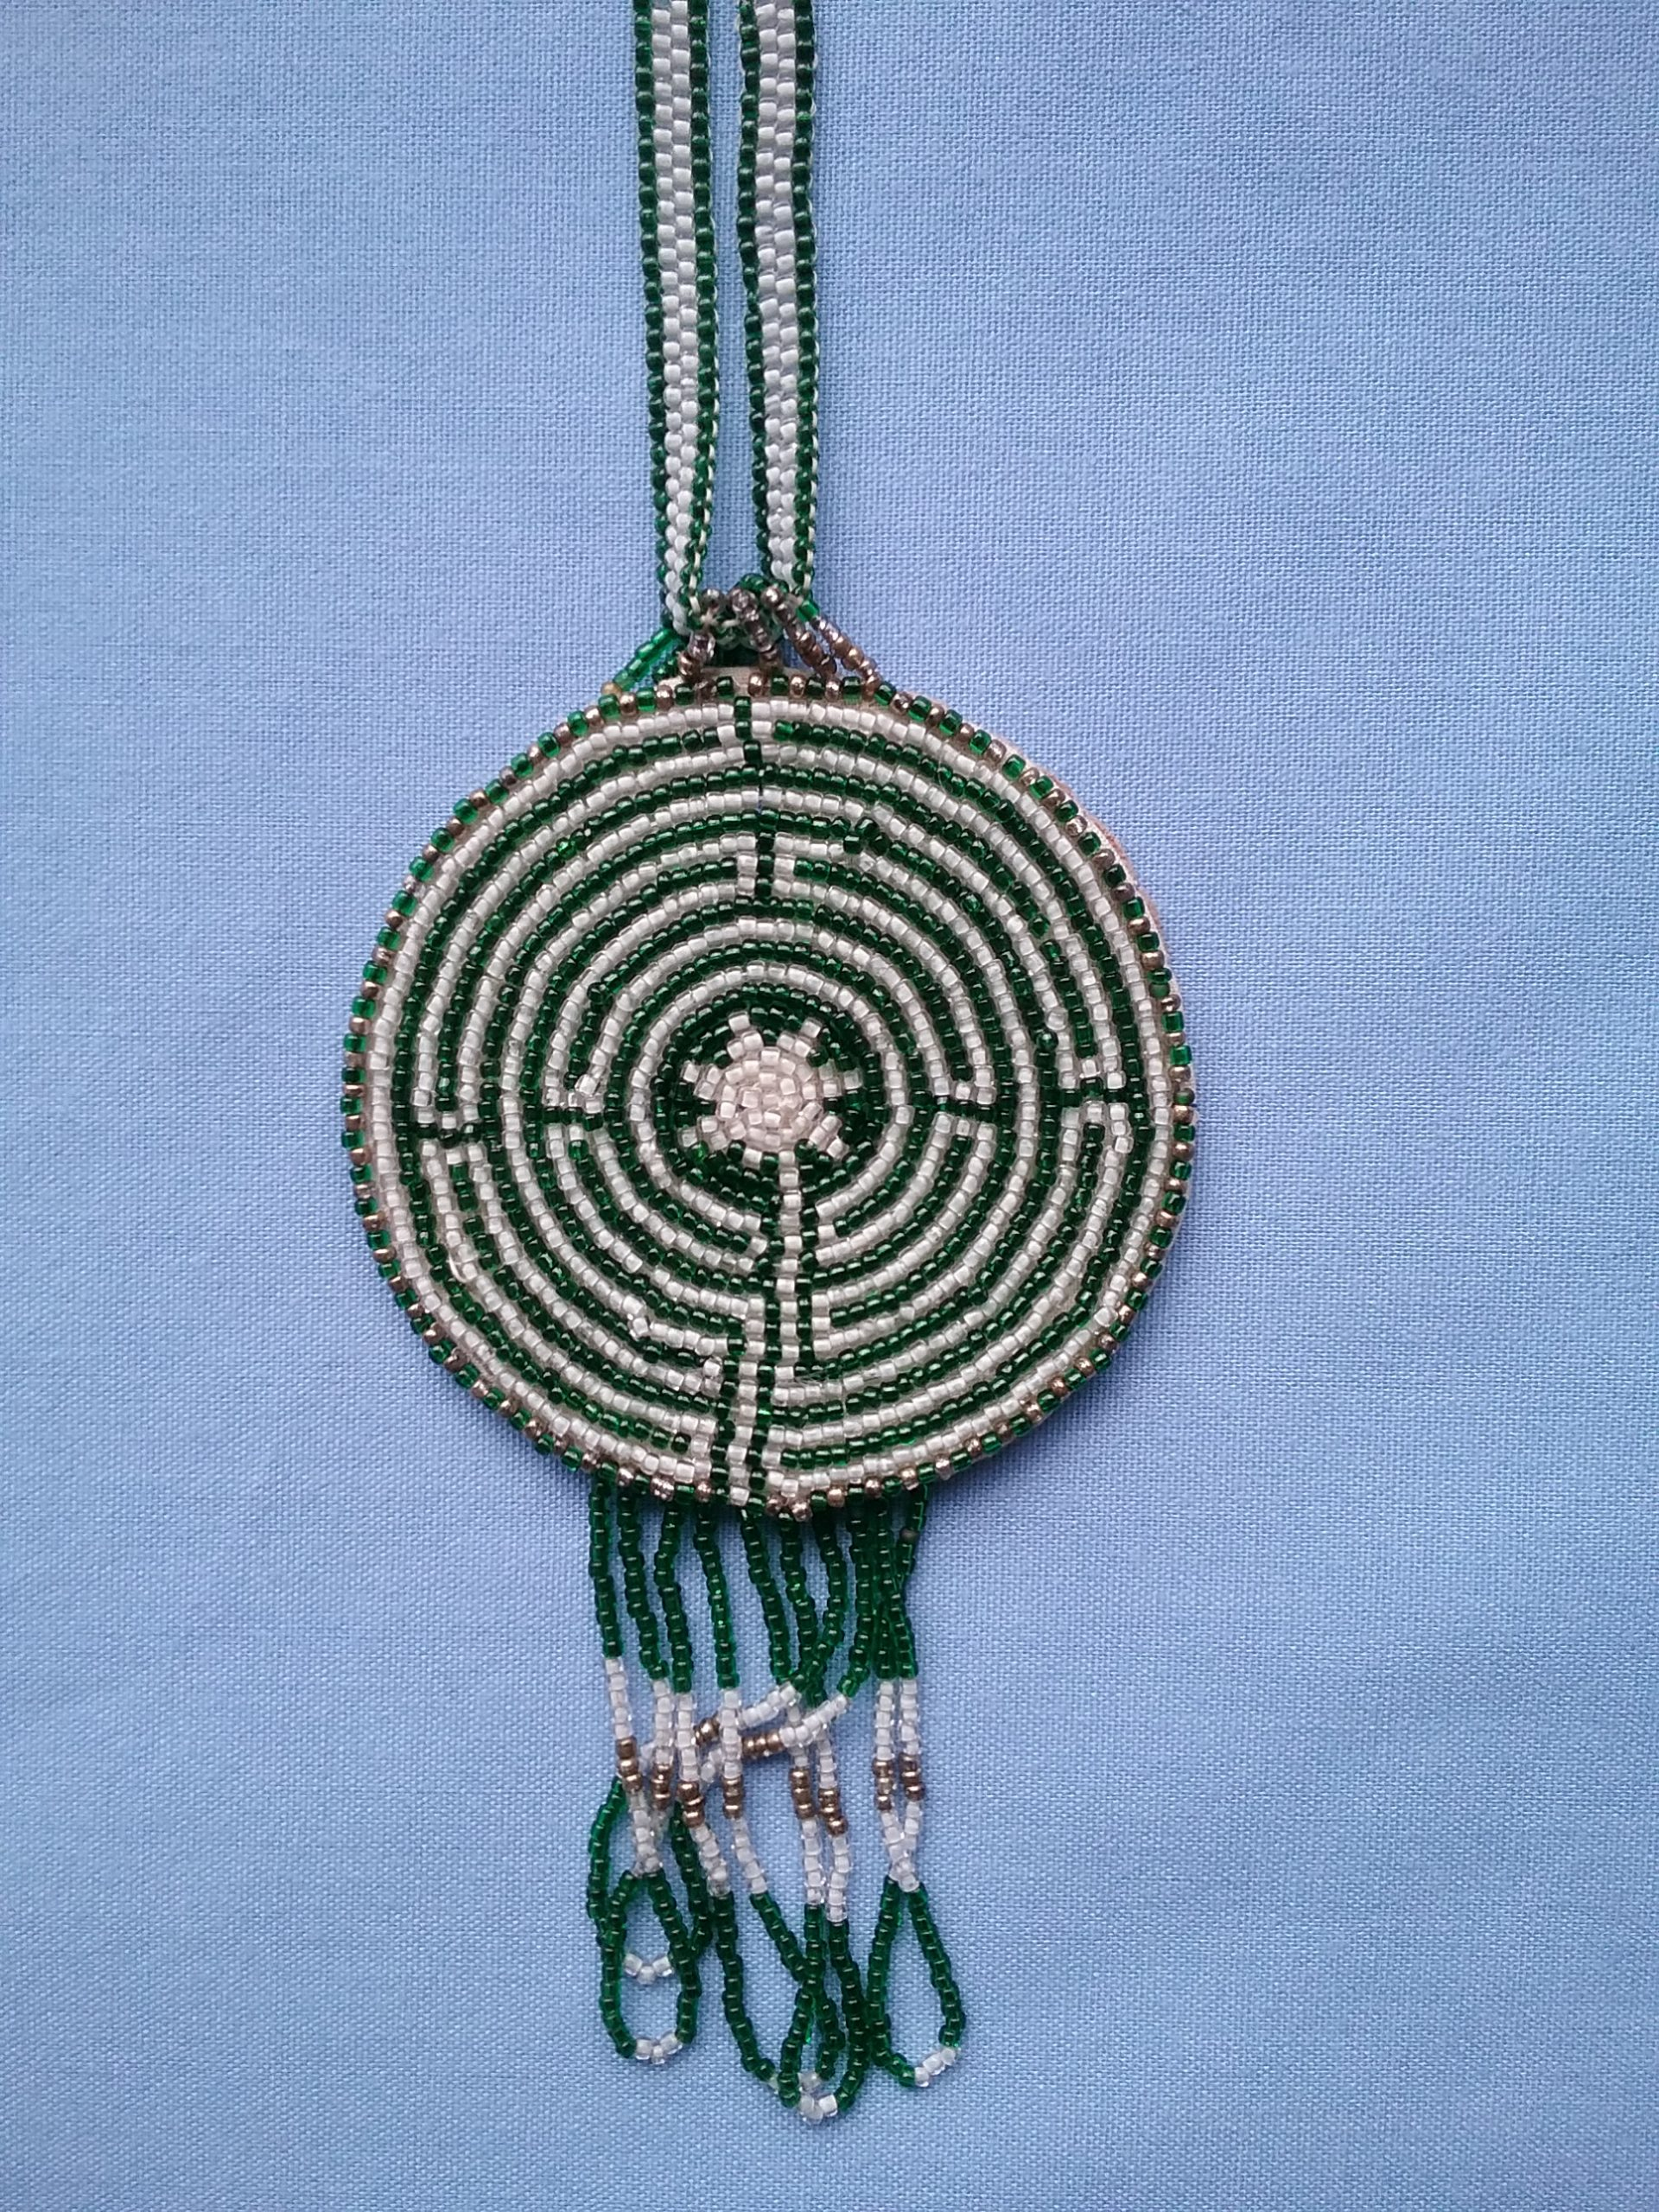 Closeup of medallion on labyrinth necklace: On loan from Sister Carol Schmit, OSF.